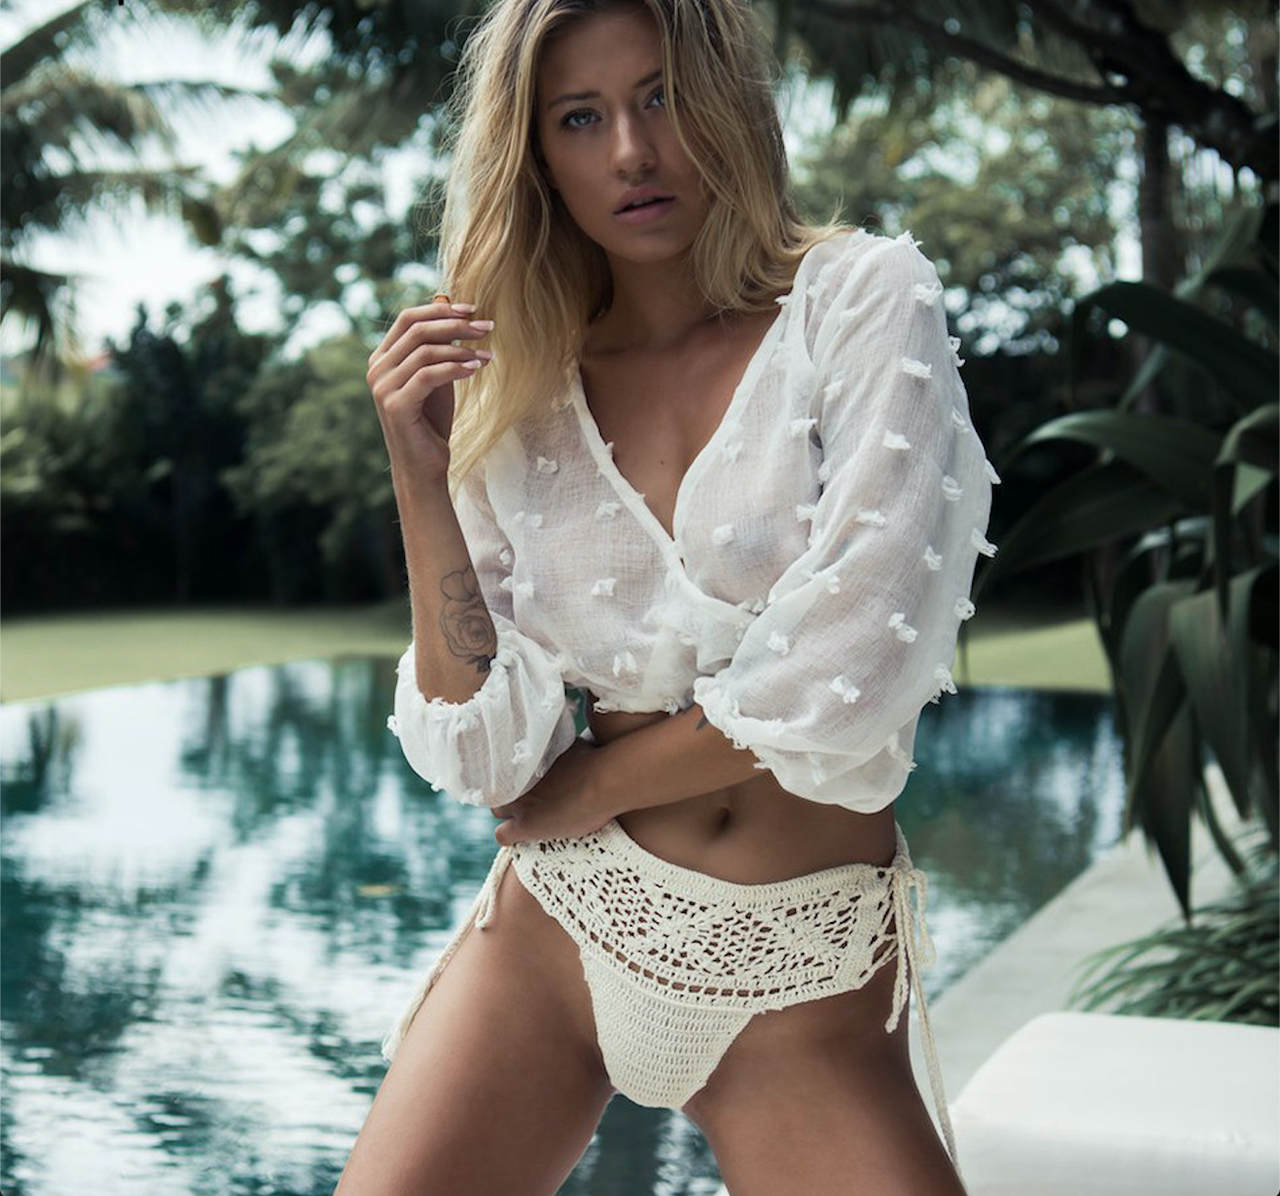 Oufisun 2019 Summer Beach Dress Women Sexy Cover Up Lace Embroidered Bikini Women Swimsuit Cover Up Cardigan Dresses Robe Femme Dresses